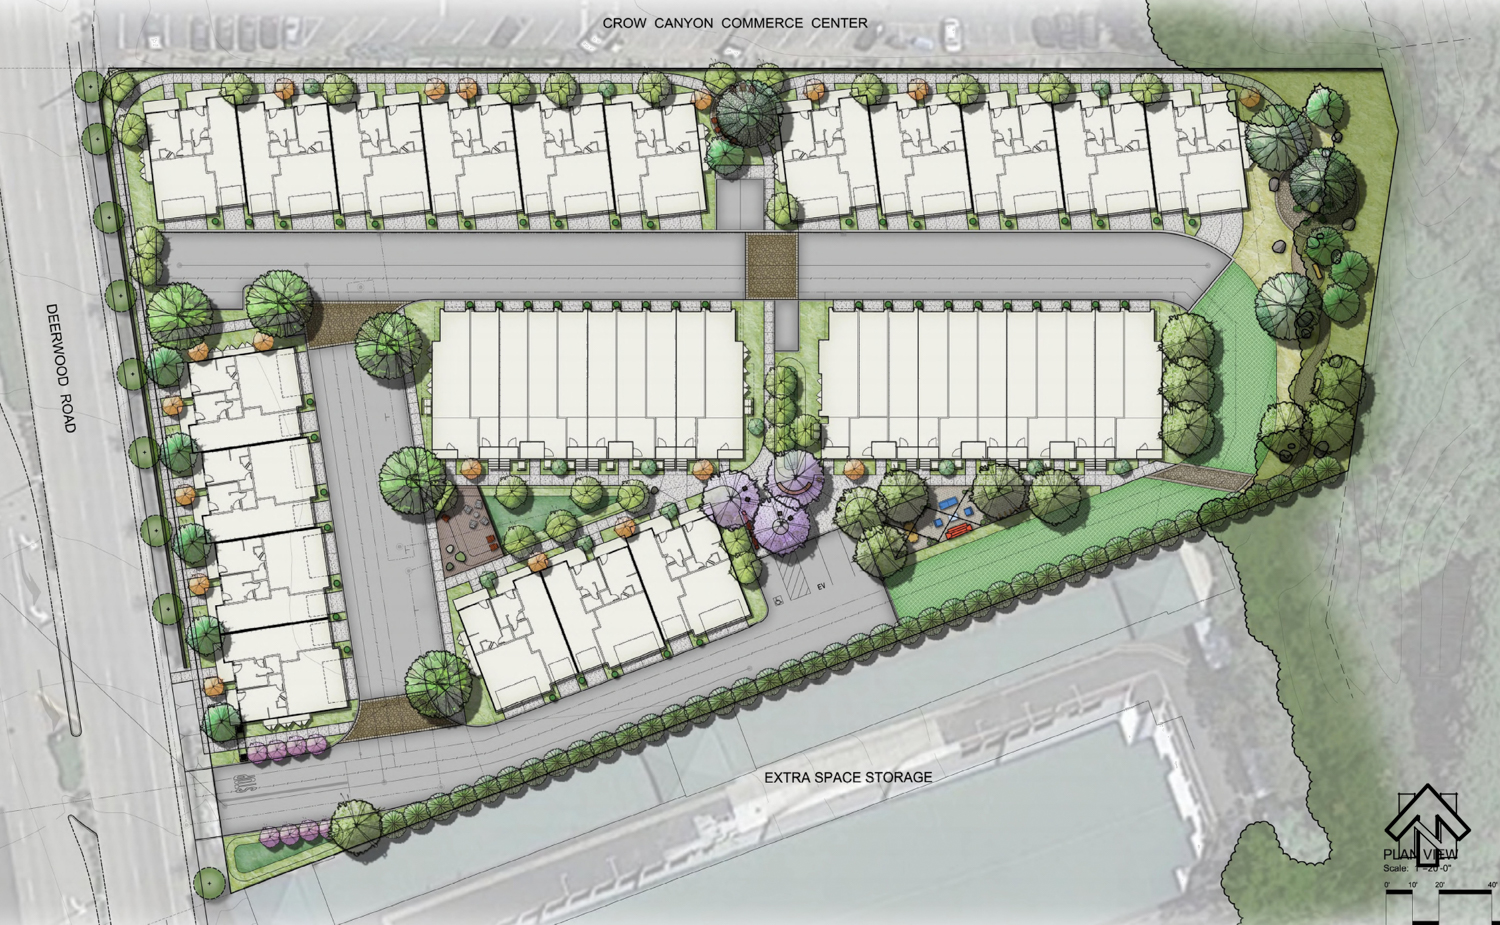 500 Deerwood Road site map, rendering by SDG Architects